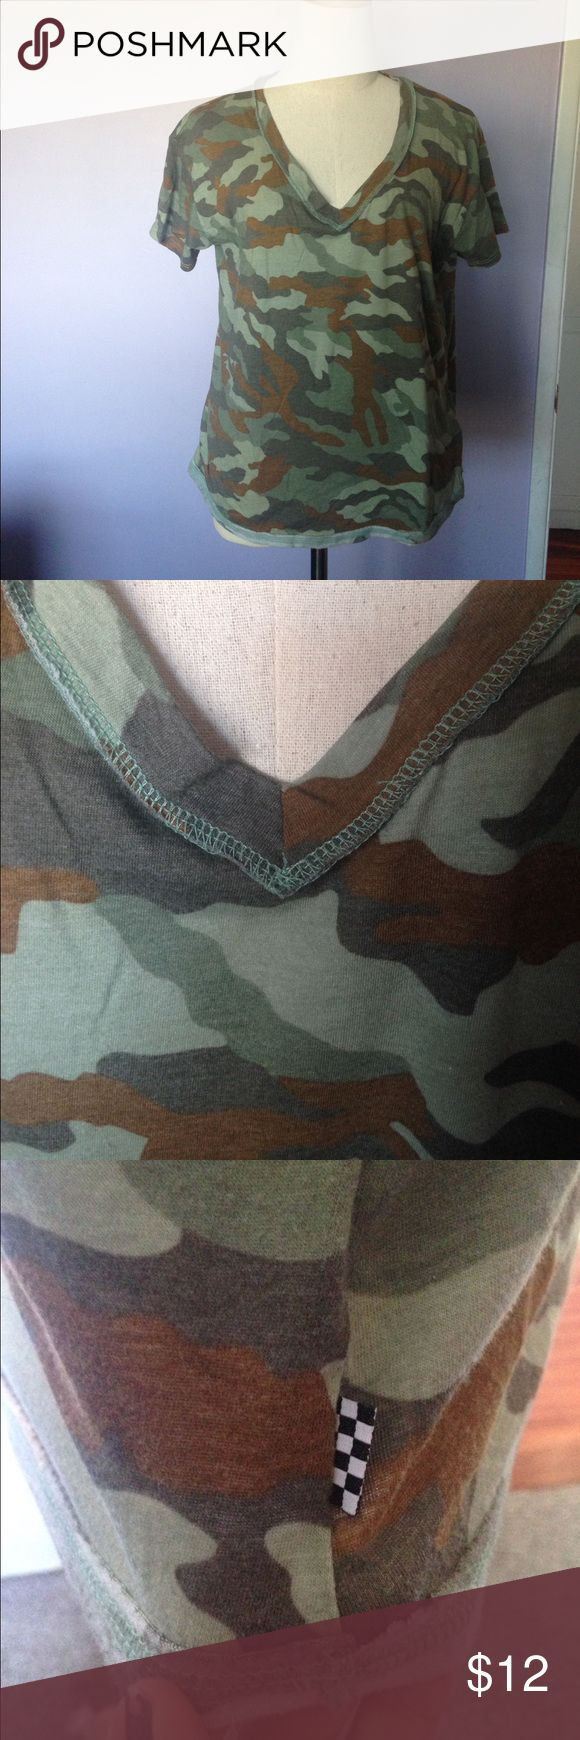 Vans camo printed short sleeve T-shirt Vans camo printed all over short sleeve V-neck T-shirt. Top of V-neck and bottom hem shows reverse stitching where stitching is intended to be seen on the outside. Size XL. Very thin material, a bit see-through. Vans Tops Tees - Short Sleeve